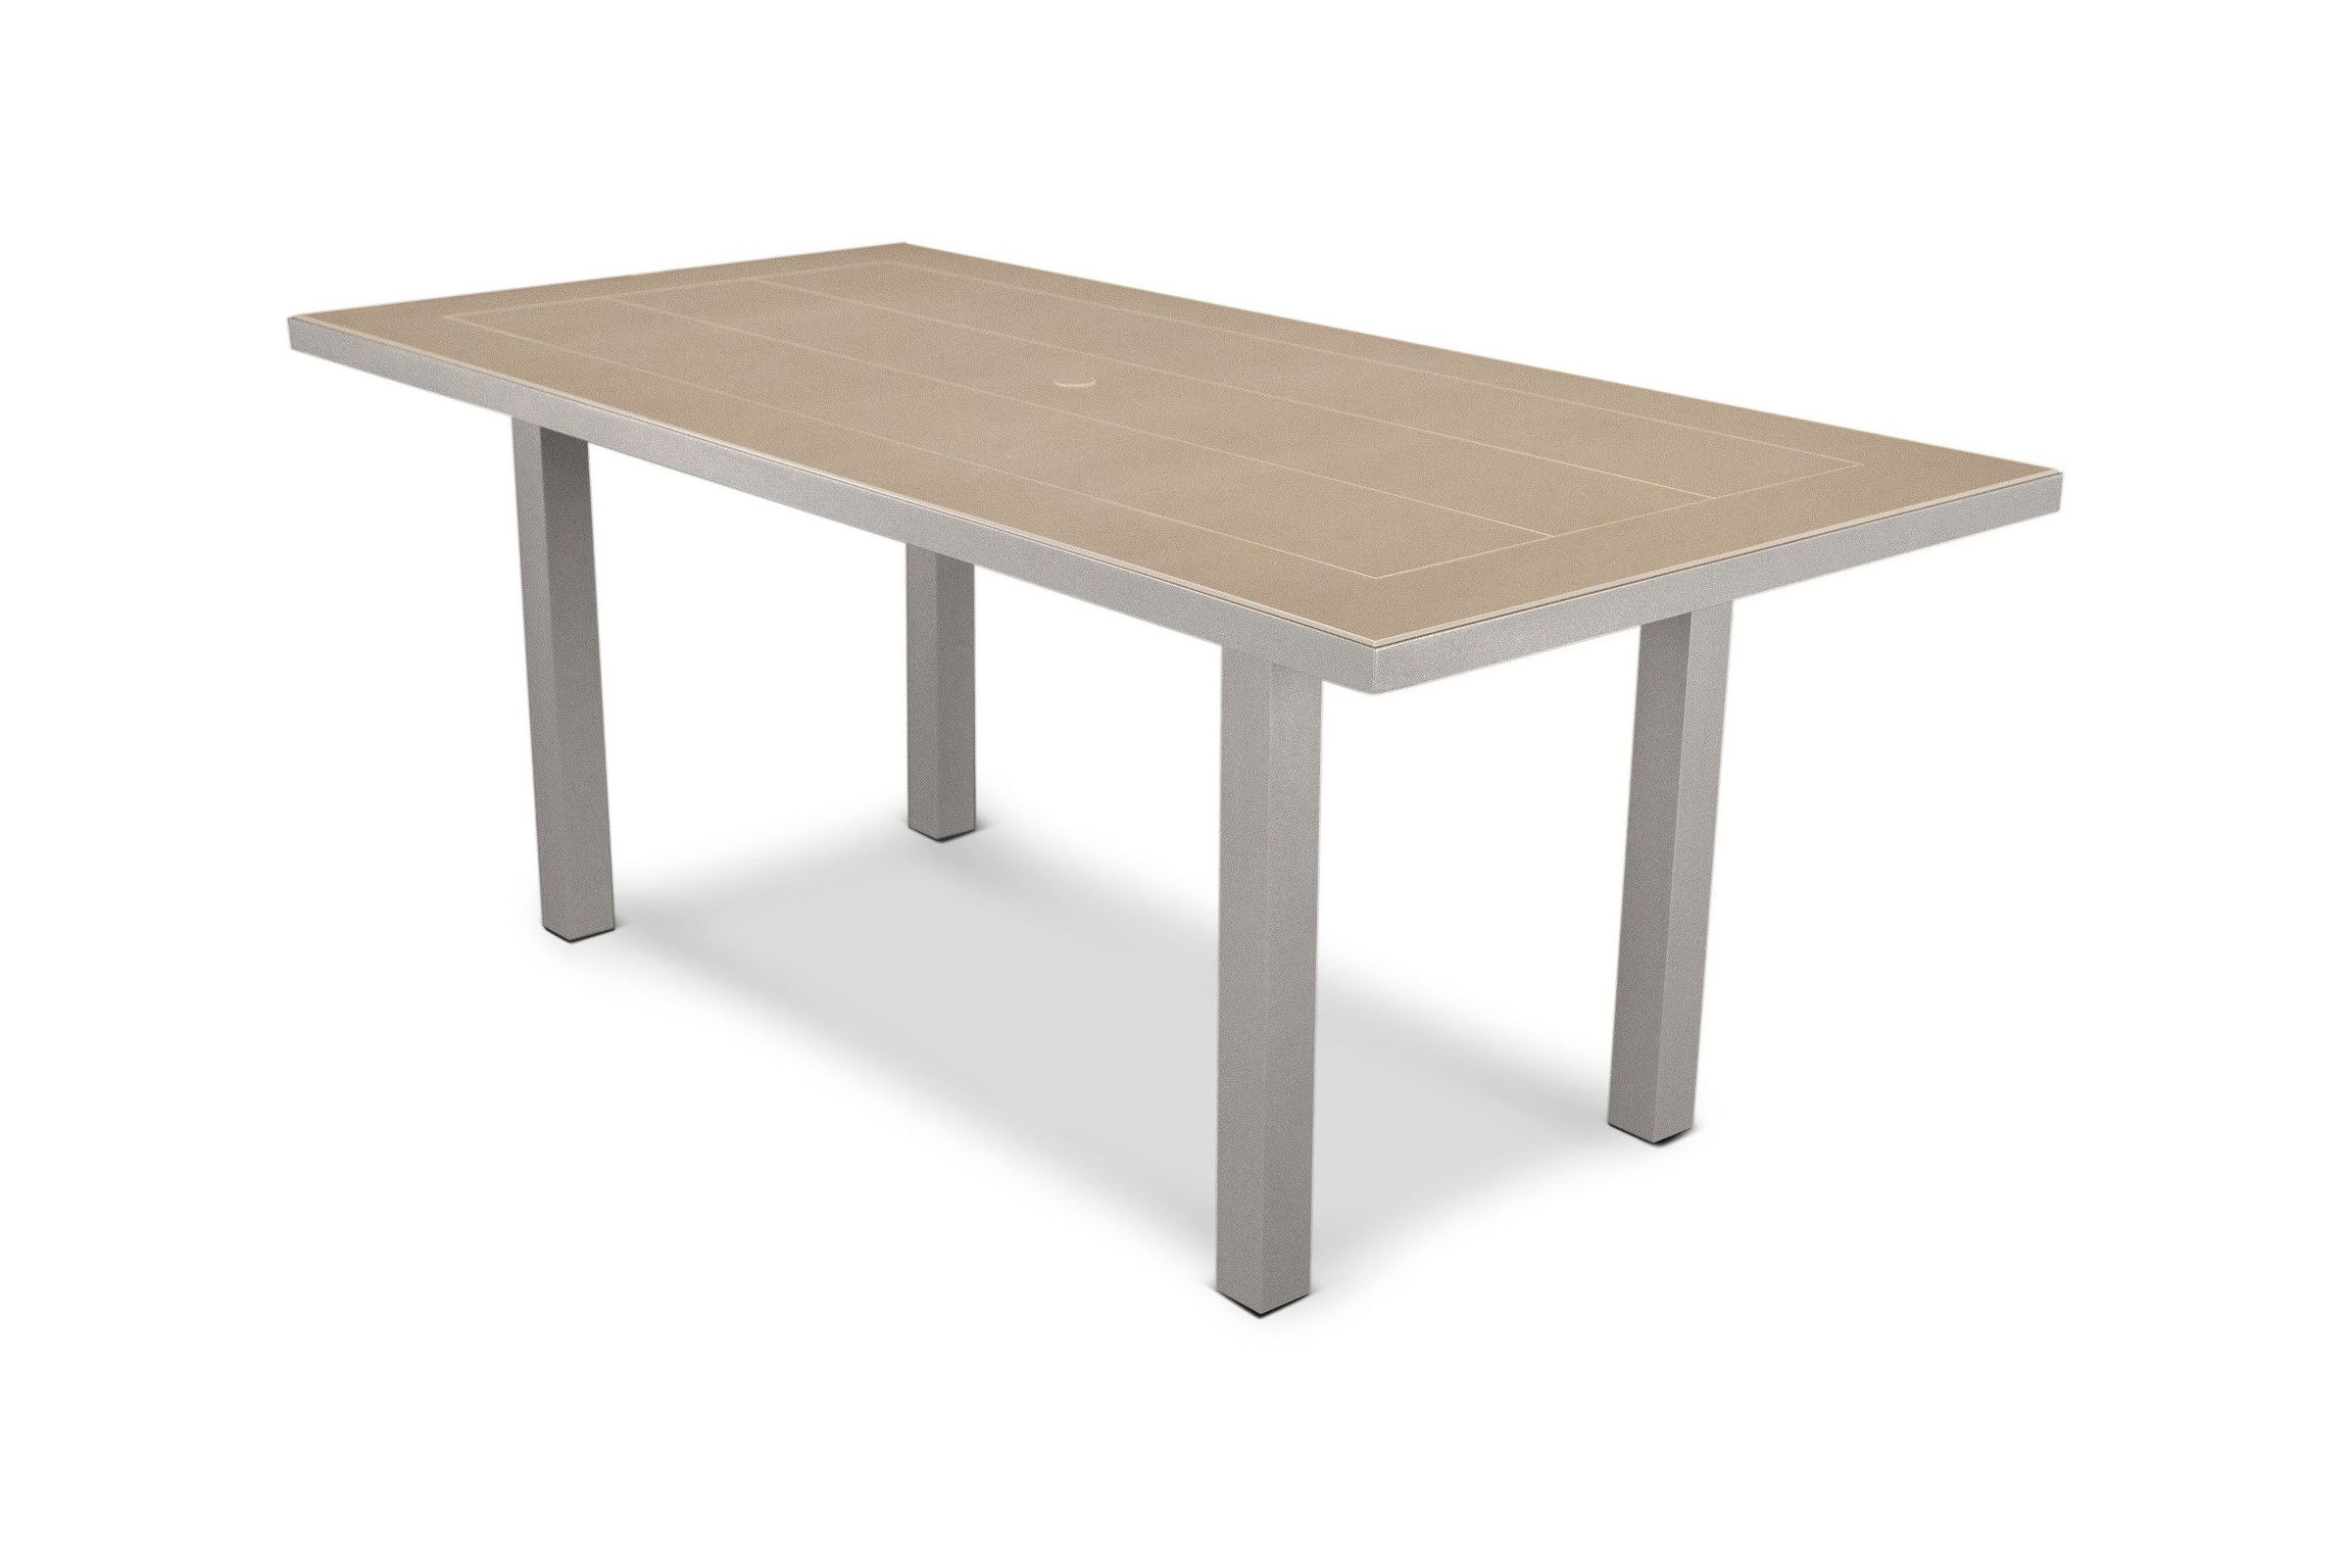 """Mgp 36"""" X 72"""" Dining Table At320 With Most Up To Date Montauk 36'' Dining Tables (View 2 of 15)"""